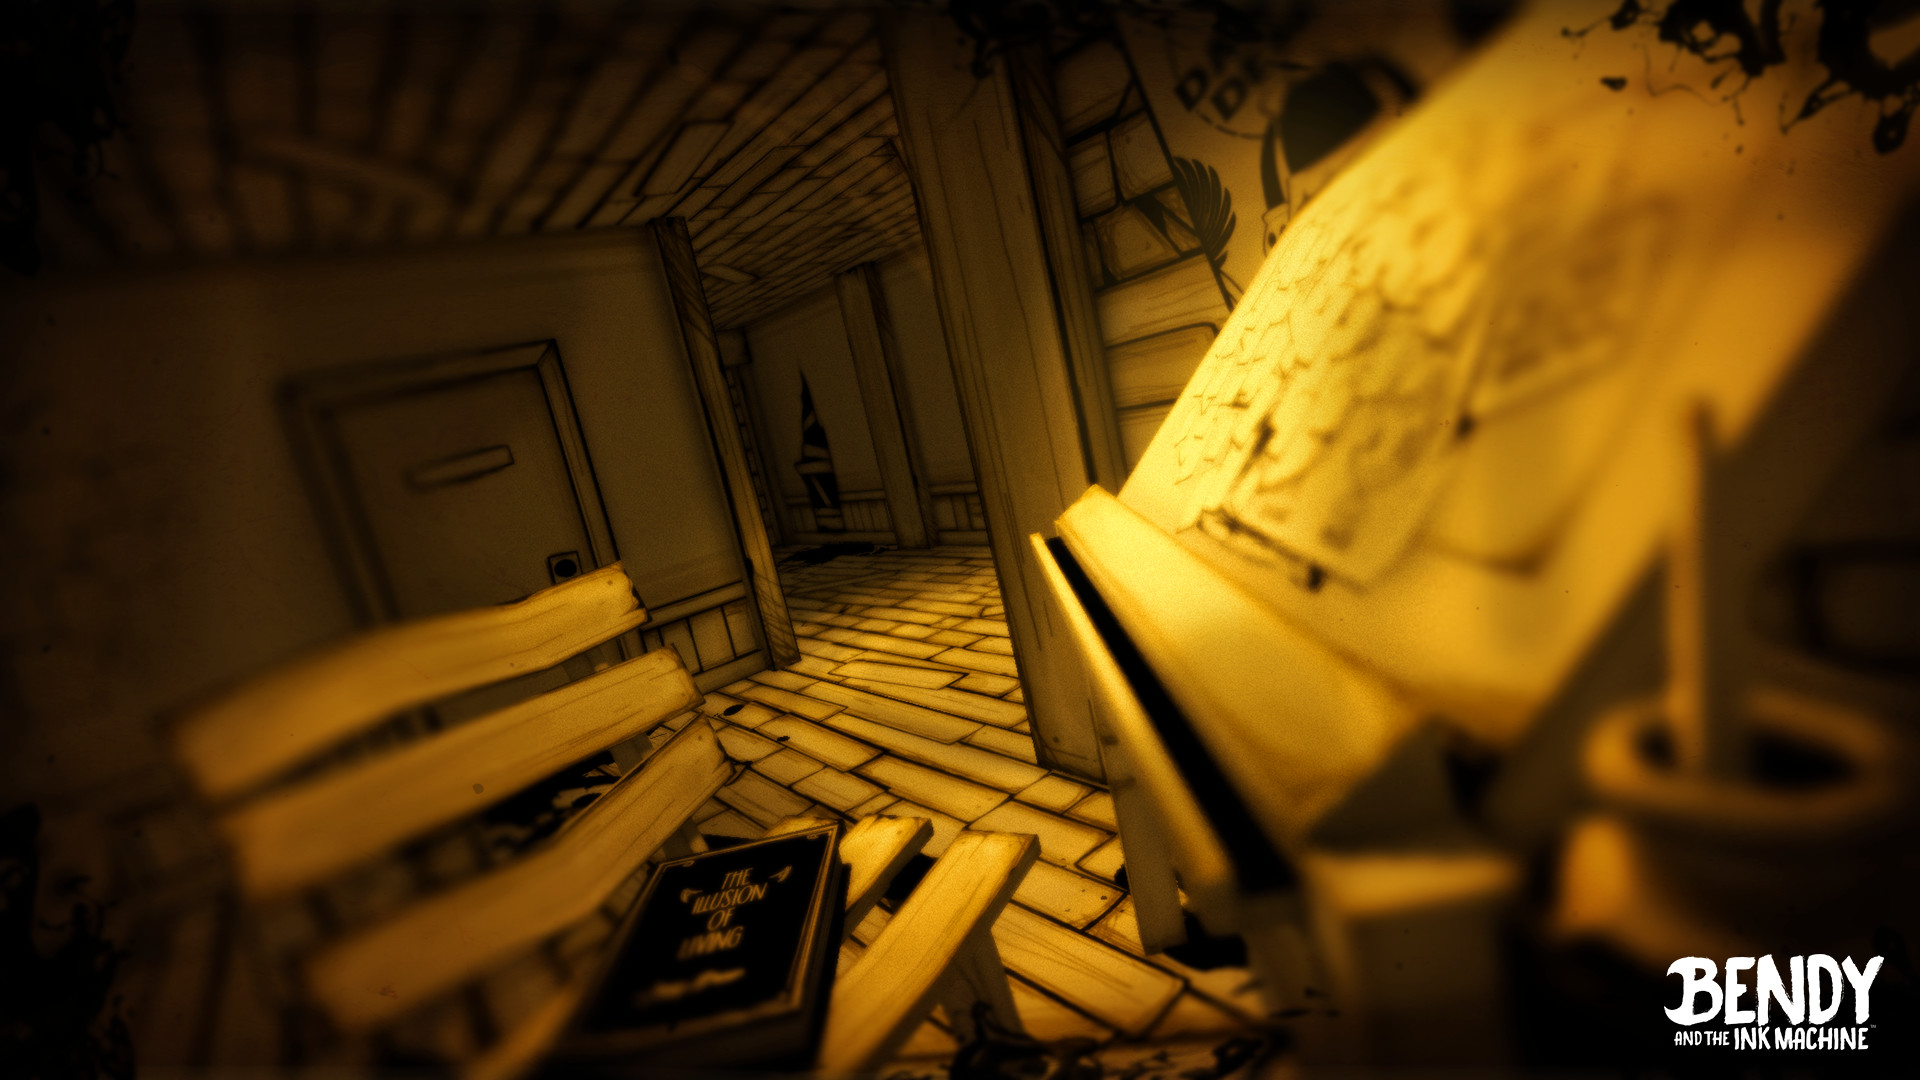 Bendy and the Ink Machine - Download Free Full Games ...